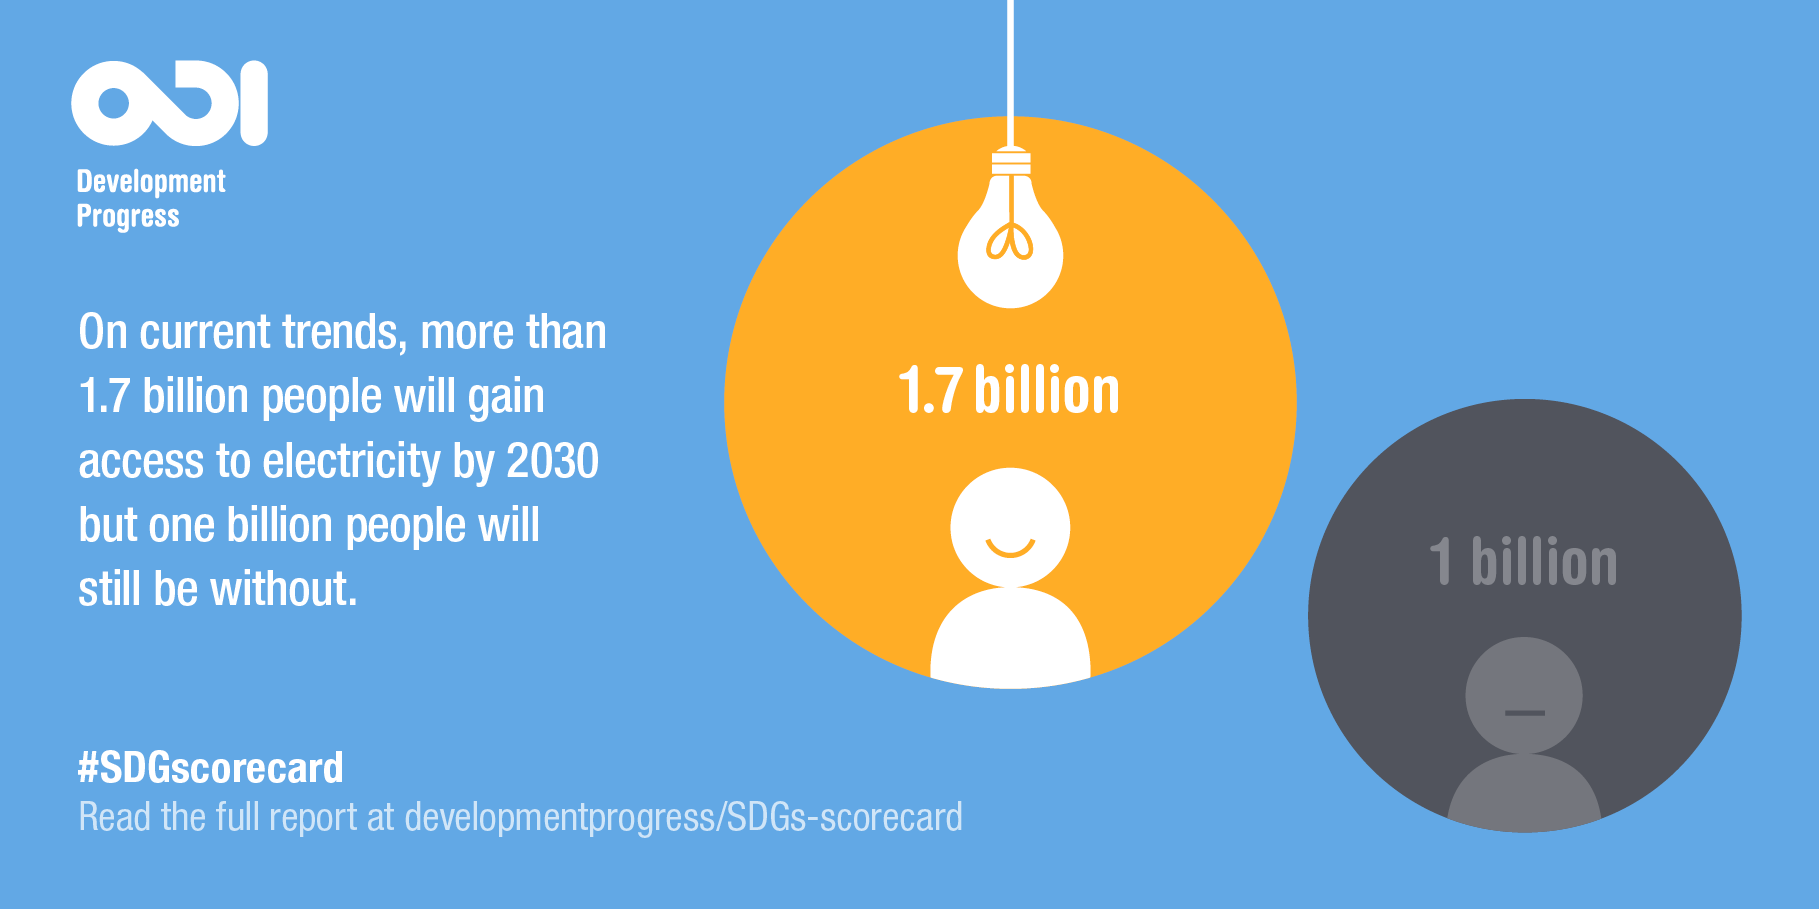 Electricity access by 2030 infographic